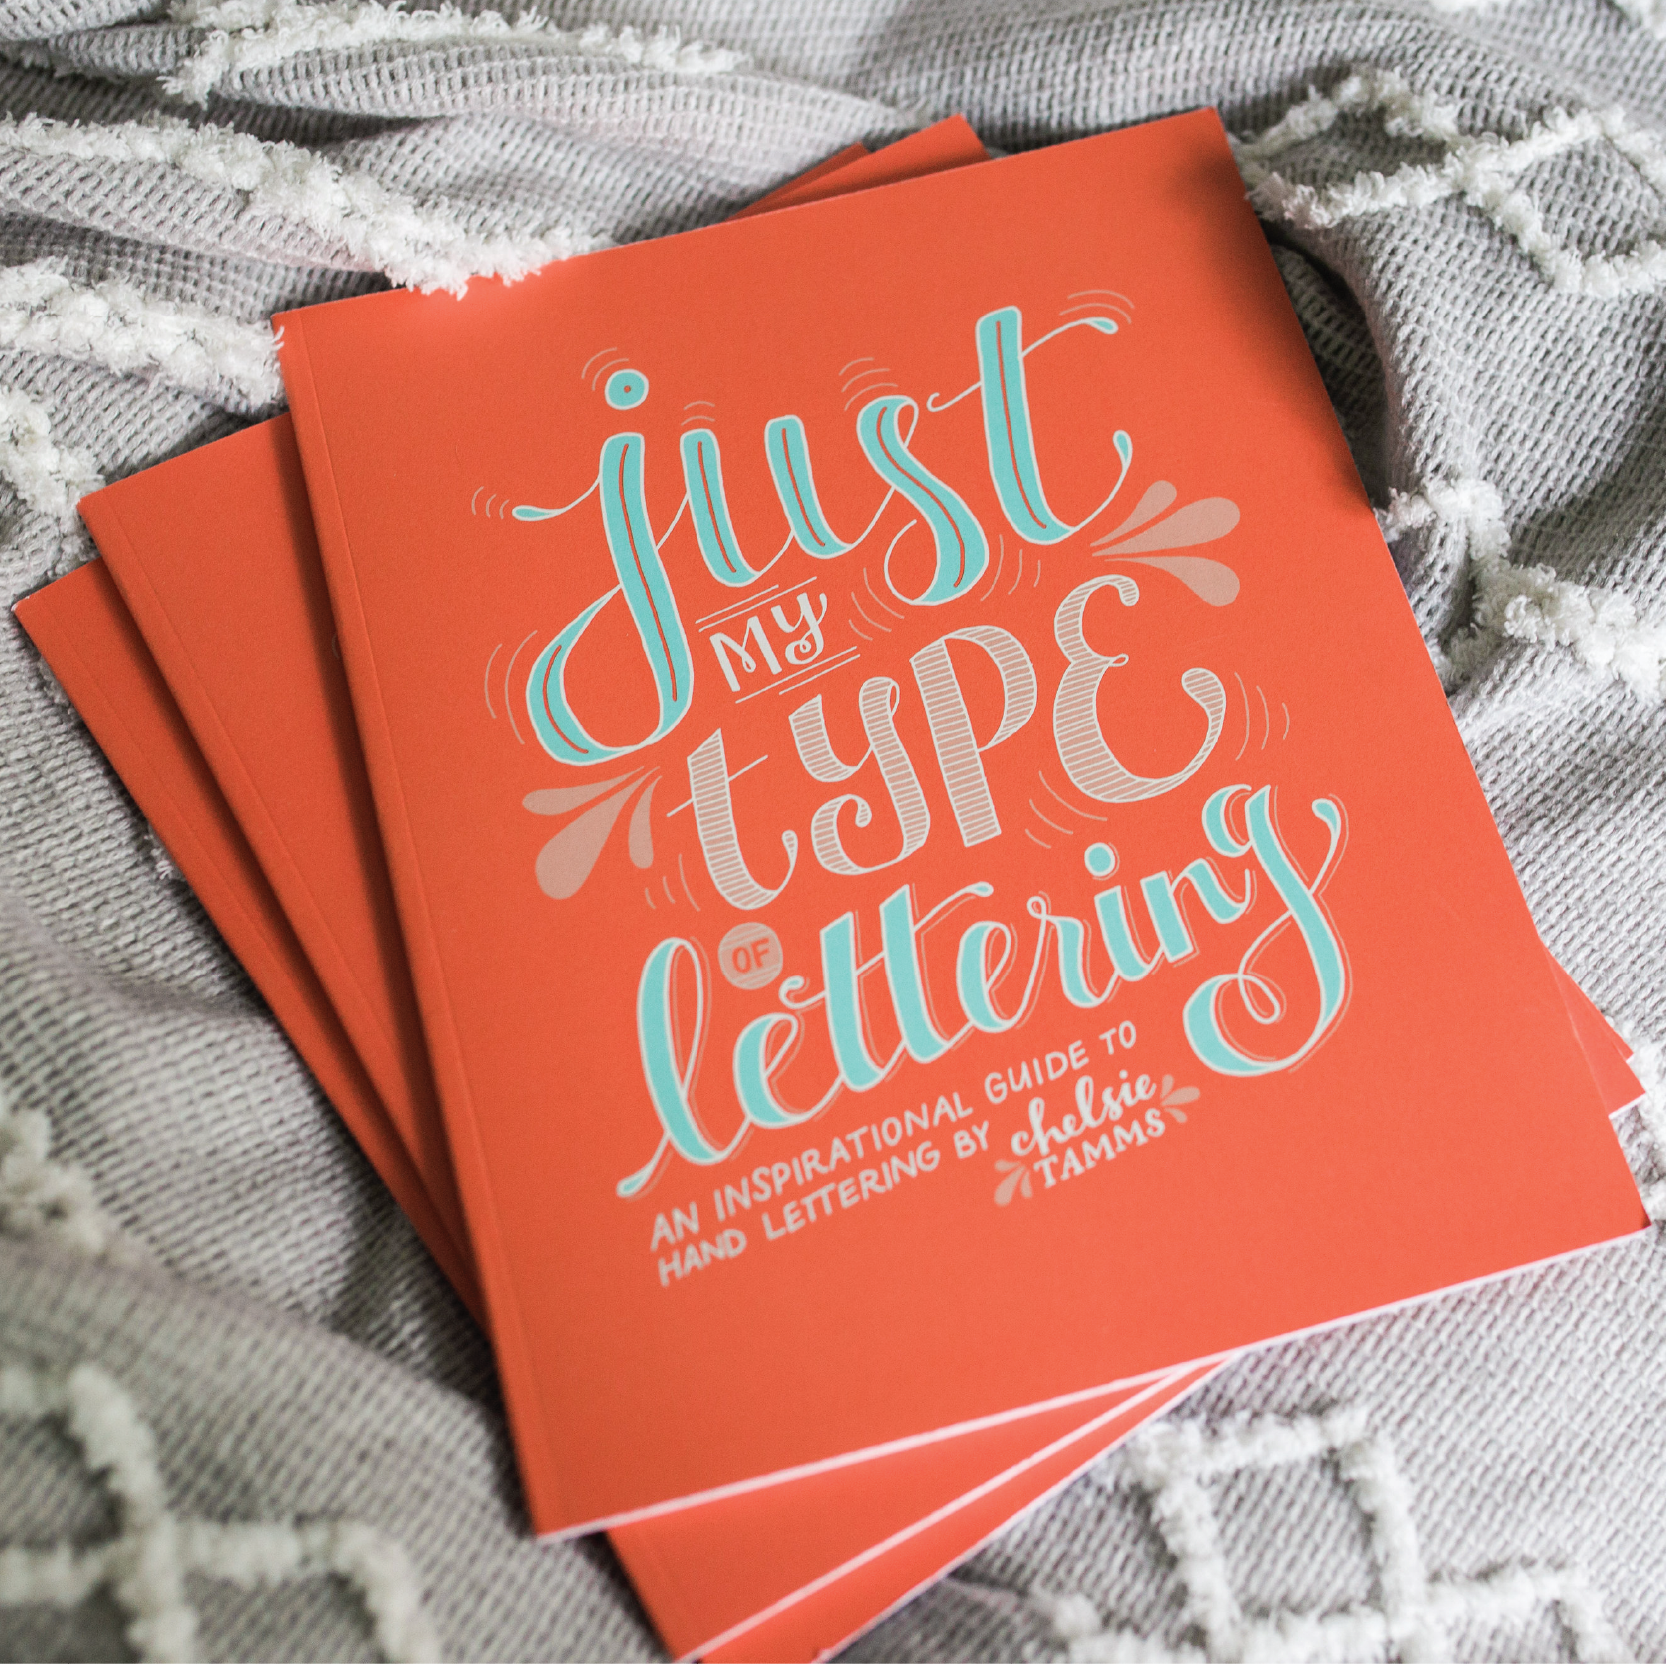 Just My Type of Lettering Book